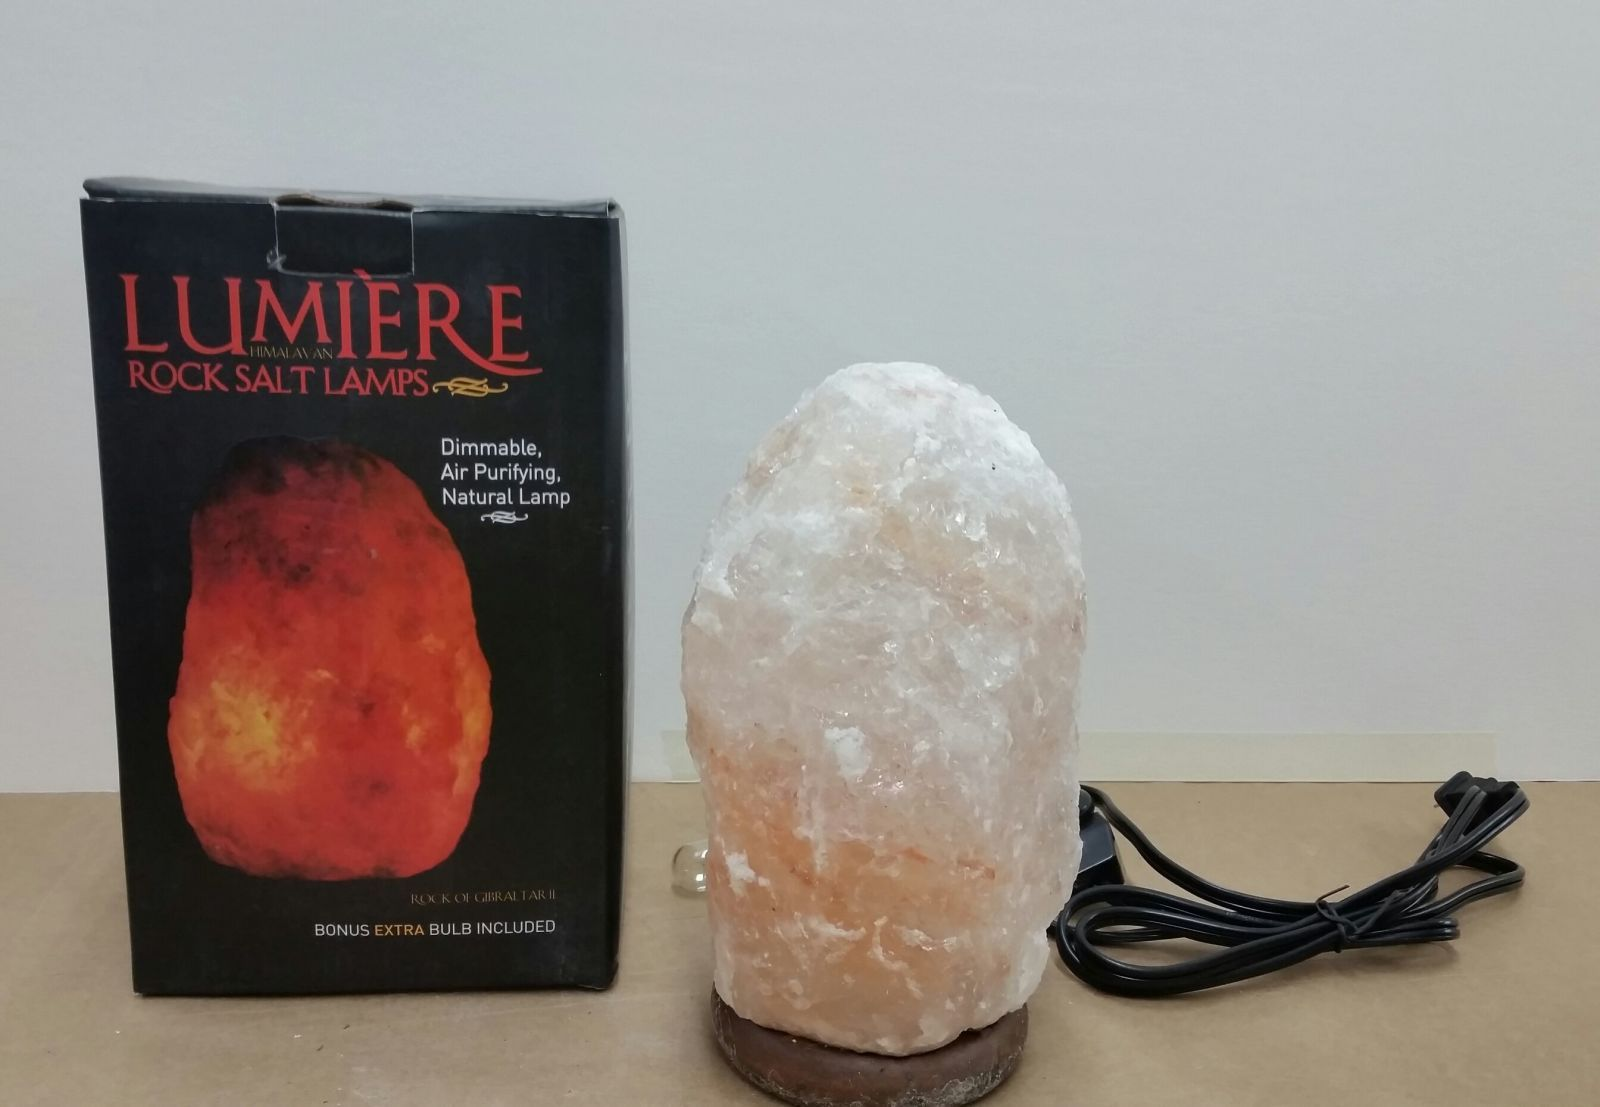 Salt Rock Lamp Recall Awesome Himalayan Rock Salt Lamps Recalled For Fire Electric Shock Risks 2018